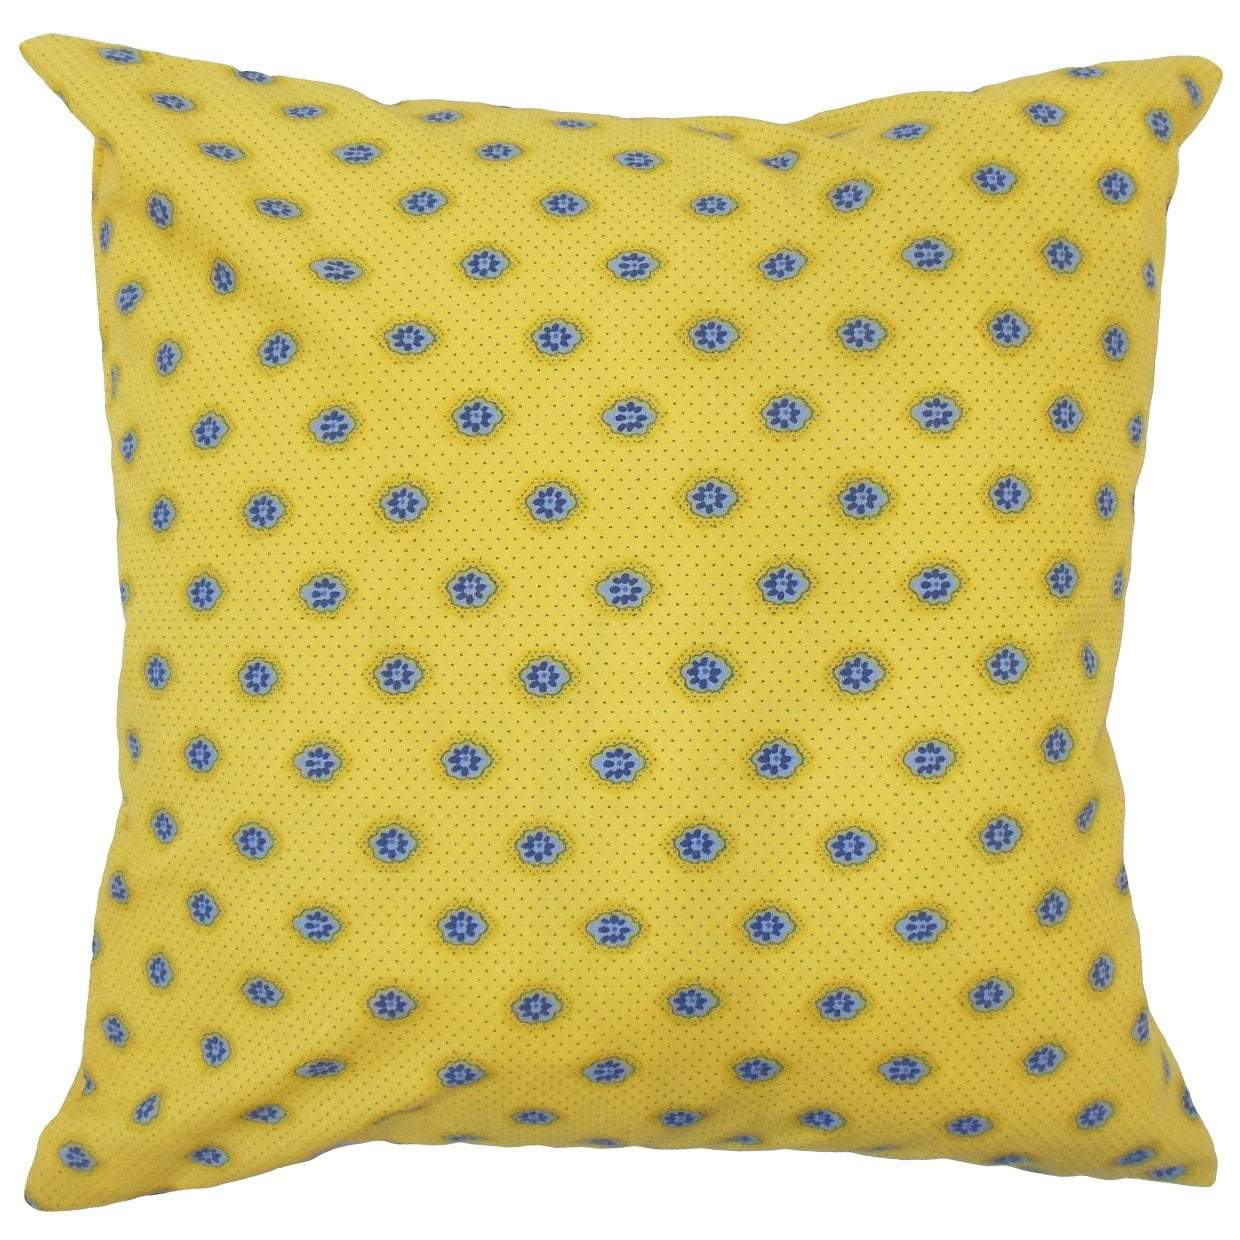 Yellow Cotton Graphic Contemporary Throw Pillow Cover